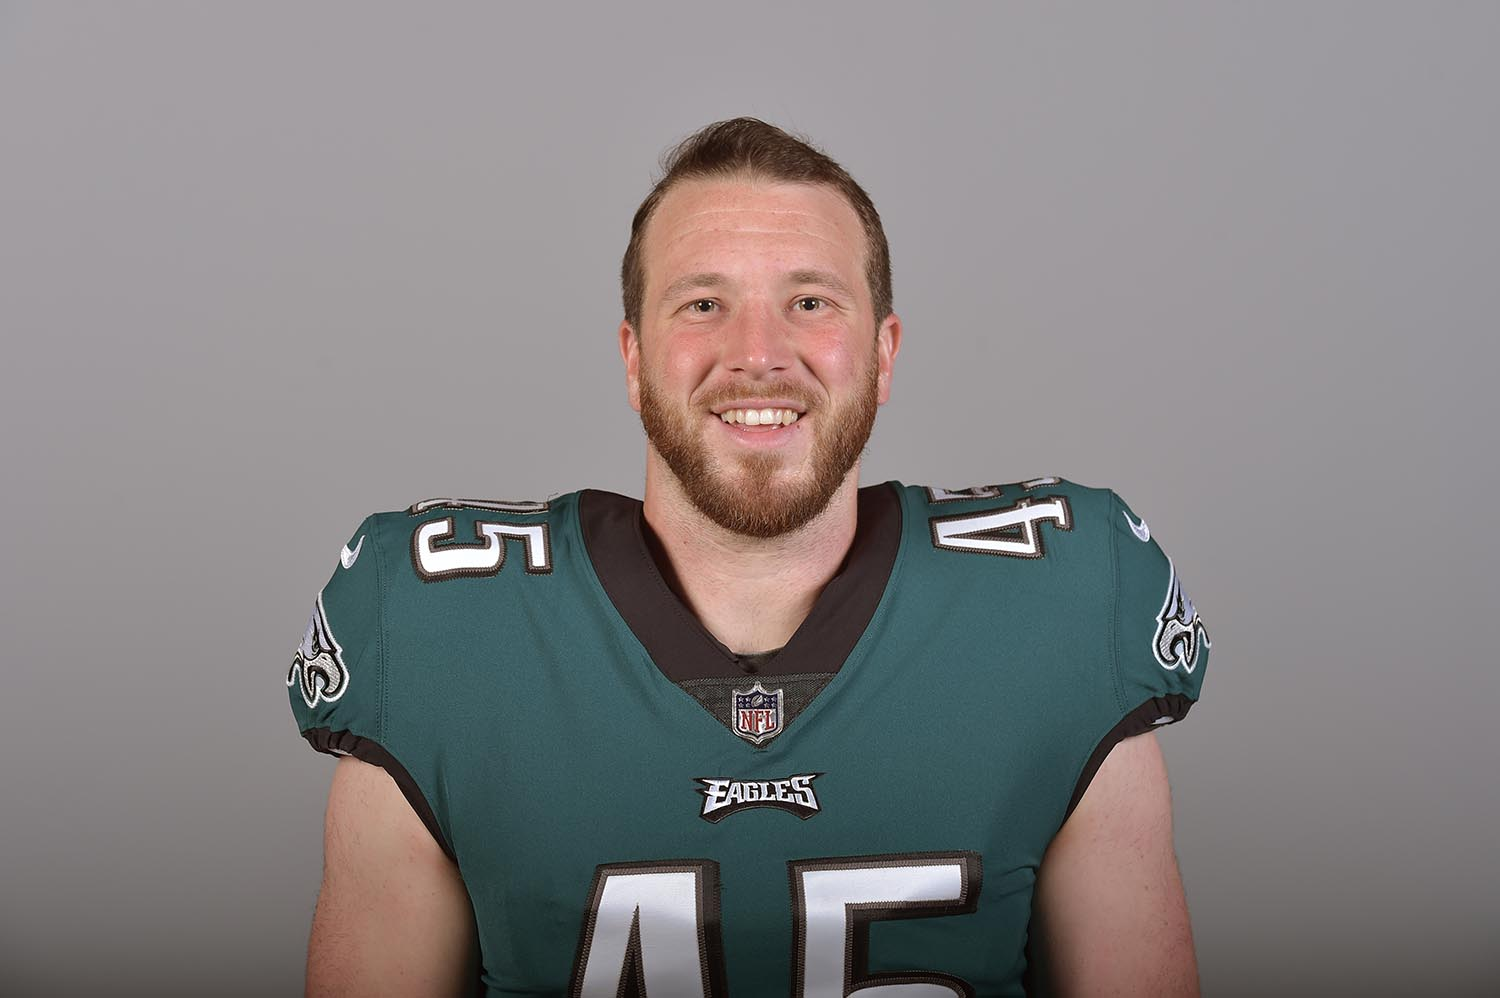 "<div class=""meta image-caption""><div class=""origin-logo origin-image ap""><span>AP</span></div><span class=""caption-text"">Philadelphia Eagles' long snapper Rick Lovato is a native of Brick Twp. Ocean Co., NJ. (AP)</span></div>"